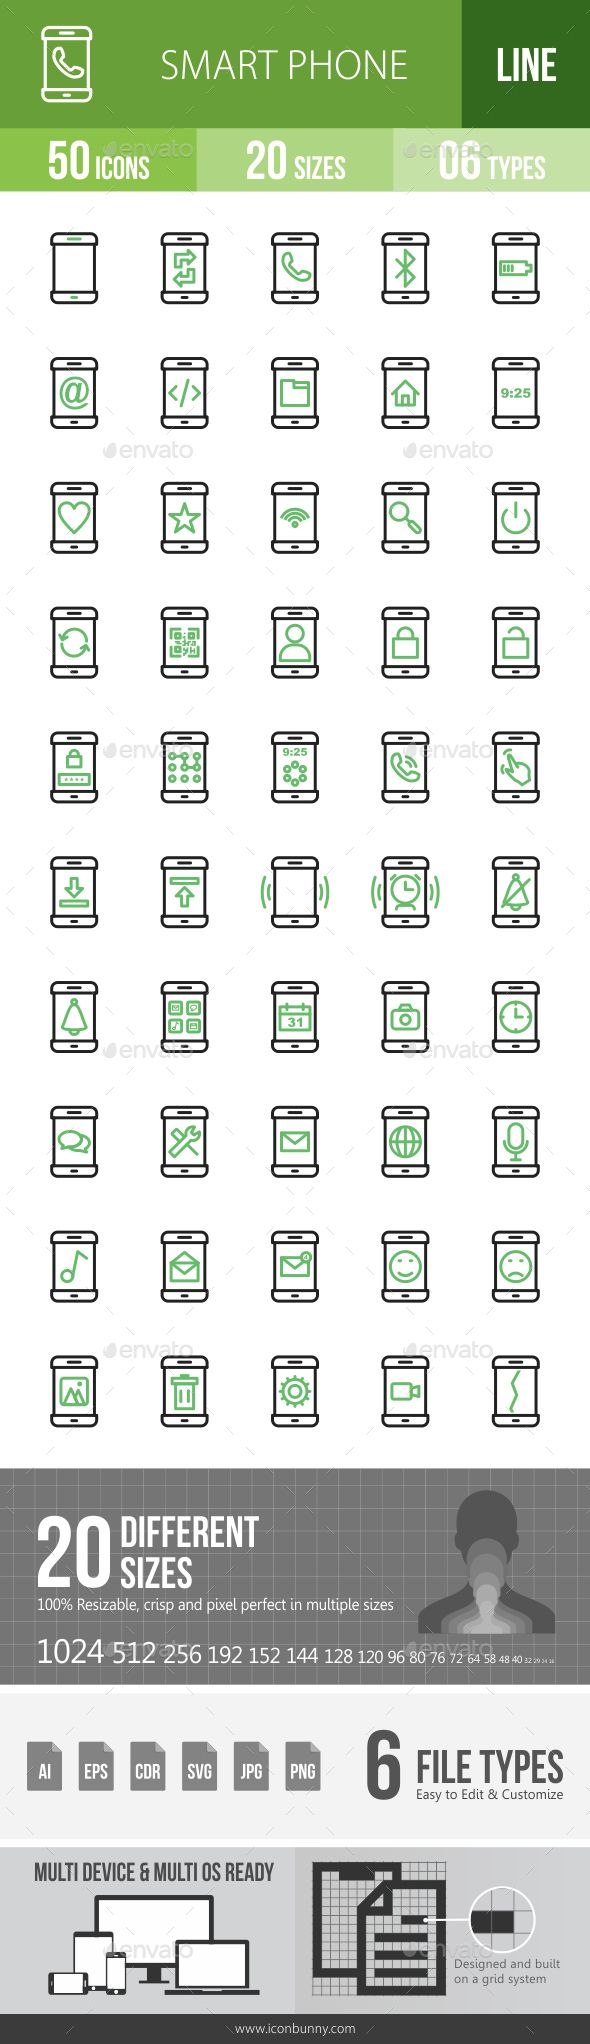 Smartphone Line Green & Black Icons  — PNG Image #messaging icon #user icon…